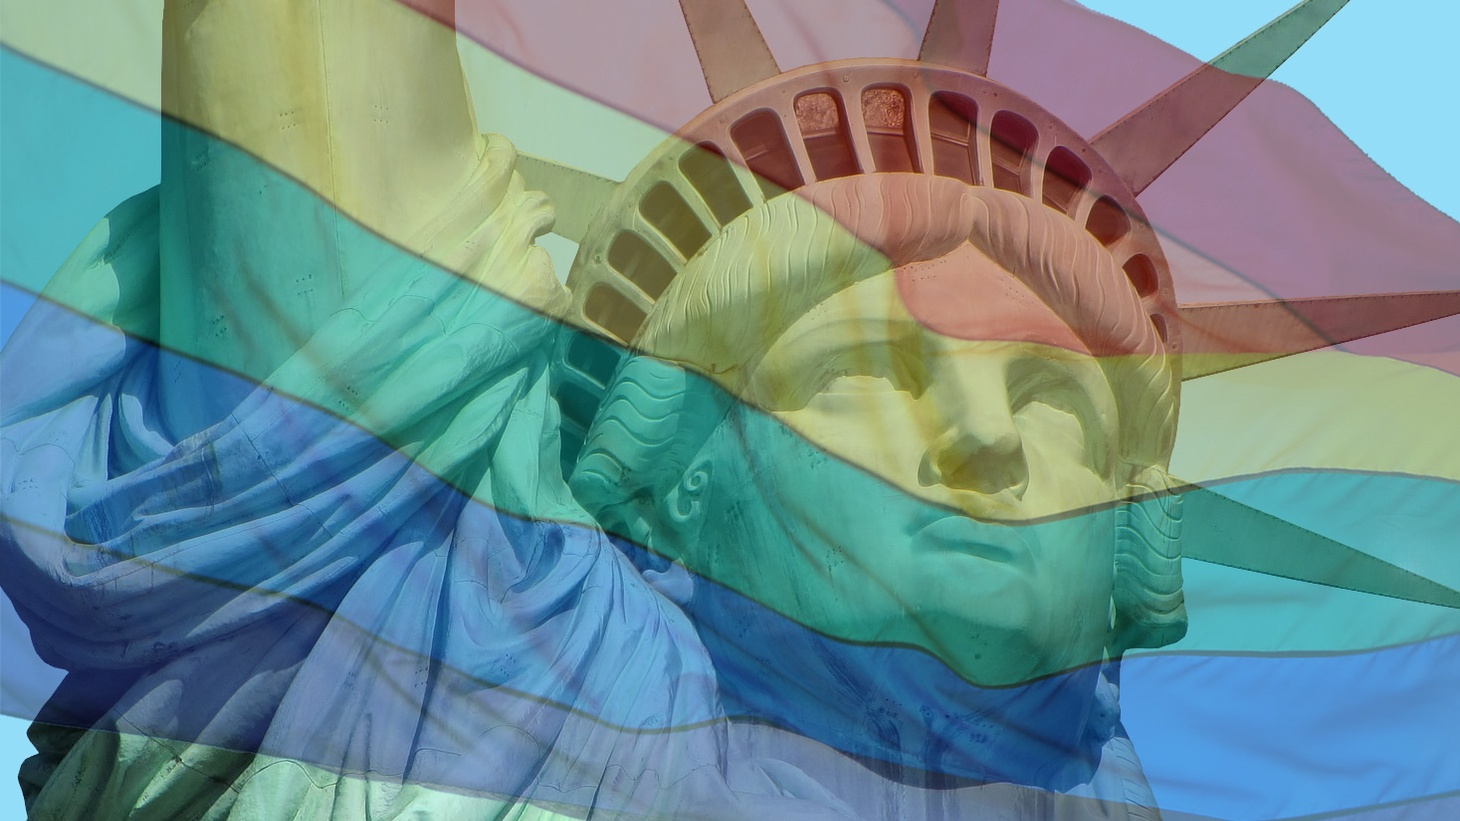 President Trump's new policies on gender and sexual orientation are a far cry from his promises during last year's election. We hear what they could mean at job sites and in the military.